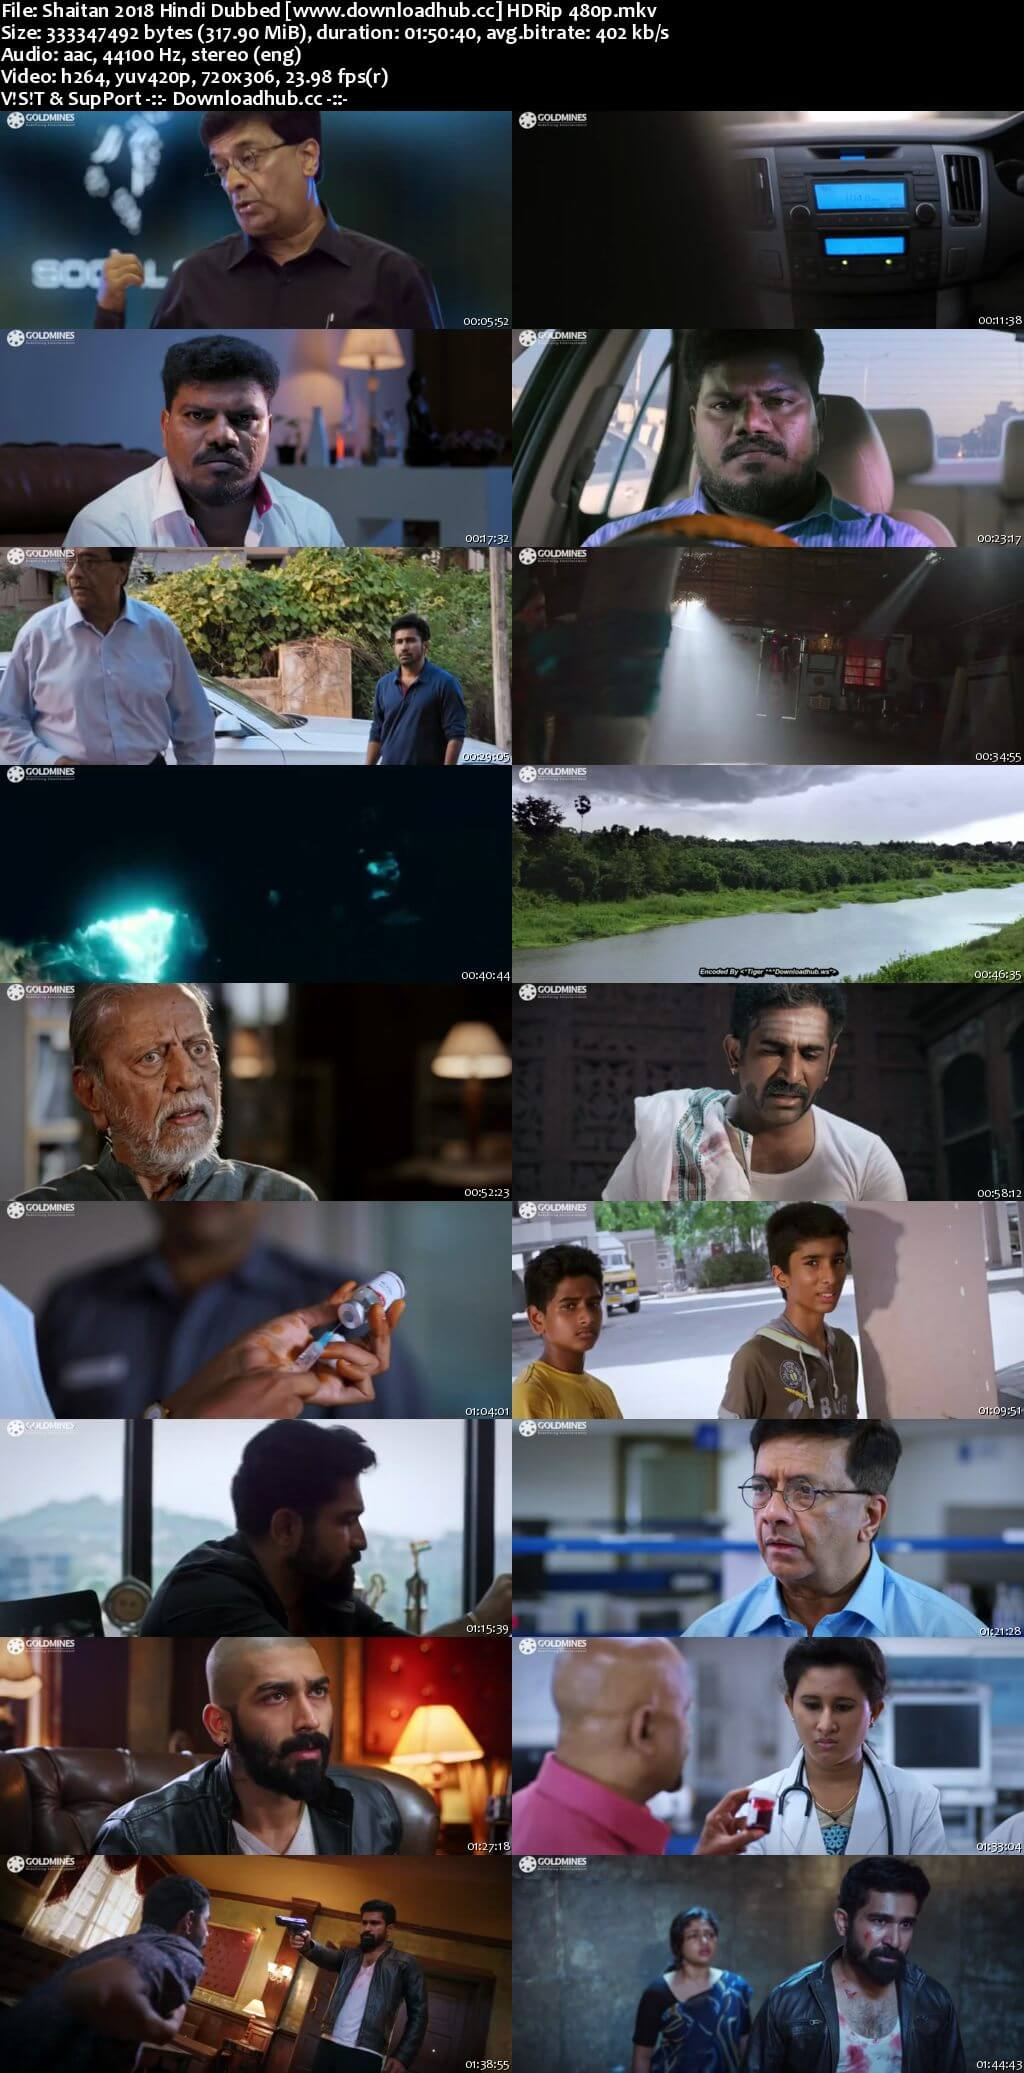 Shaitan 2018 Hindi Dubbed 300MB HDRip 480p